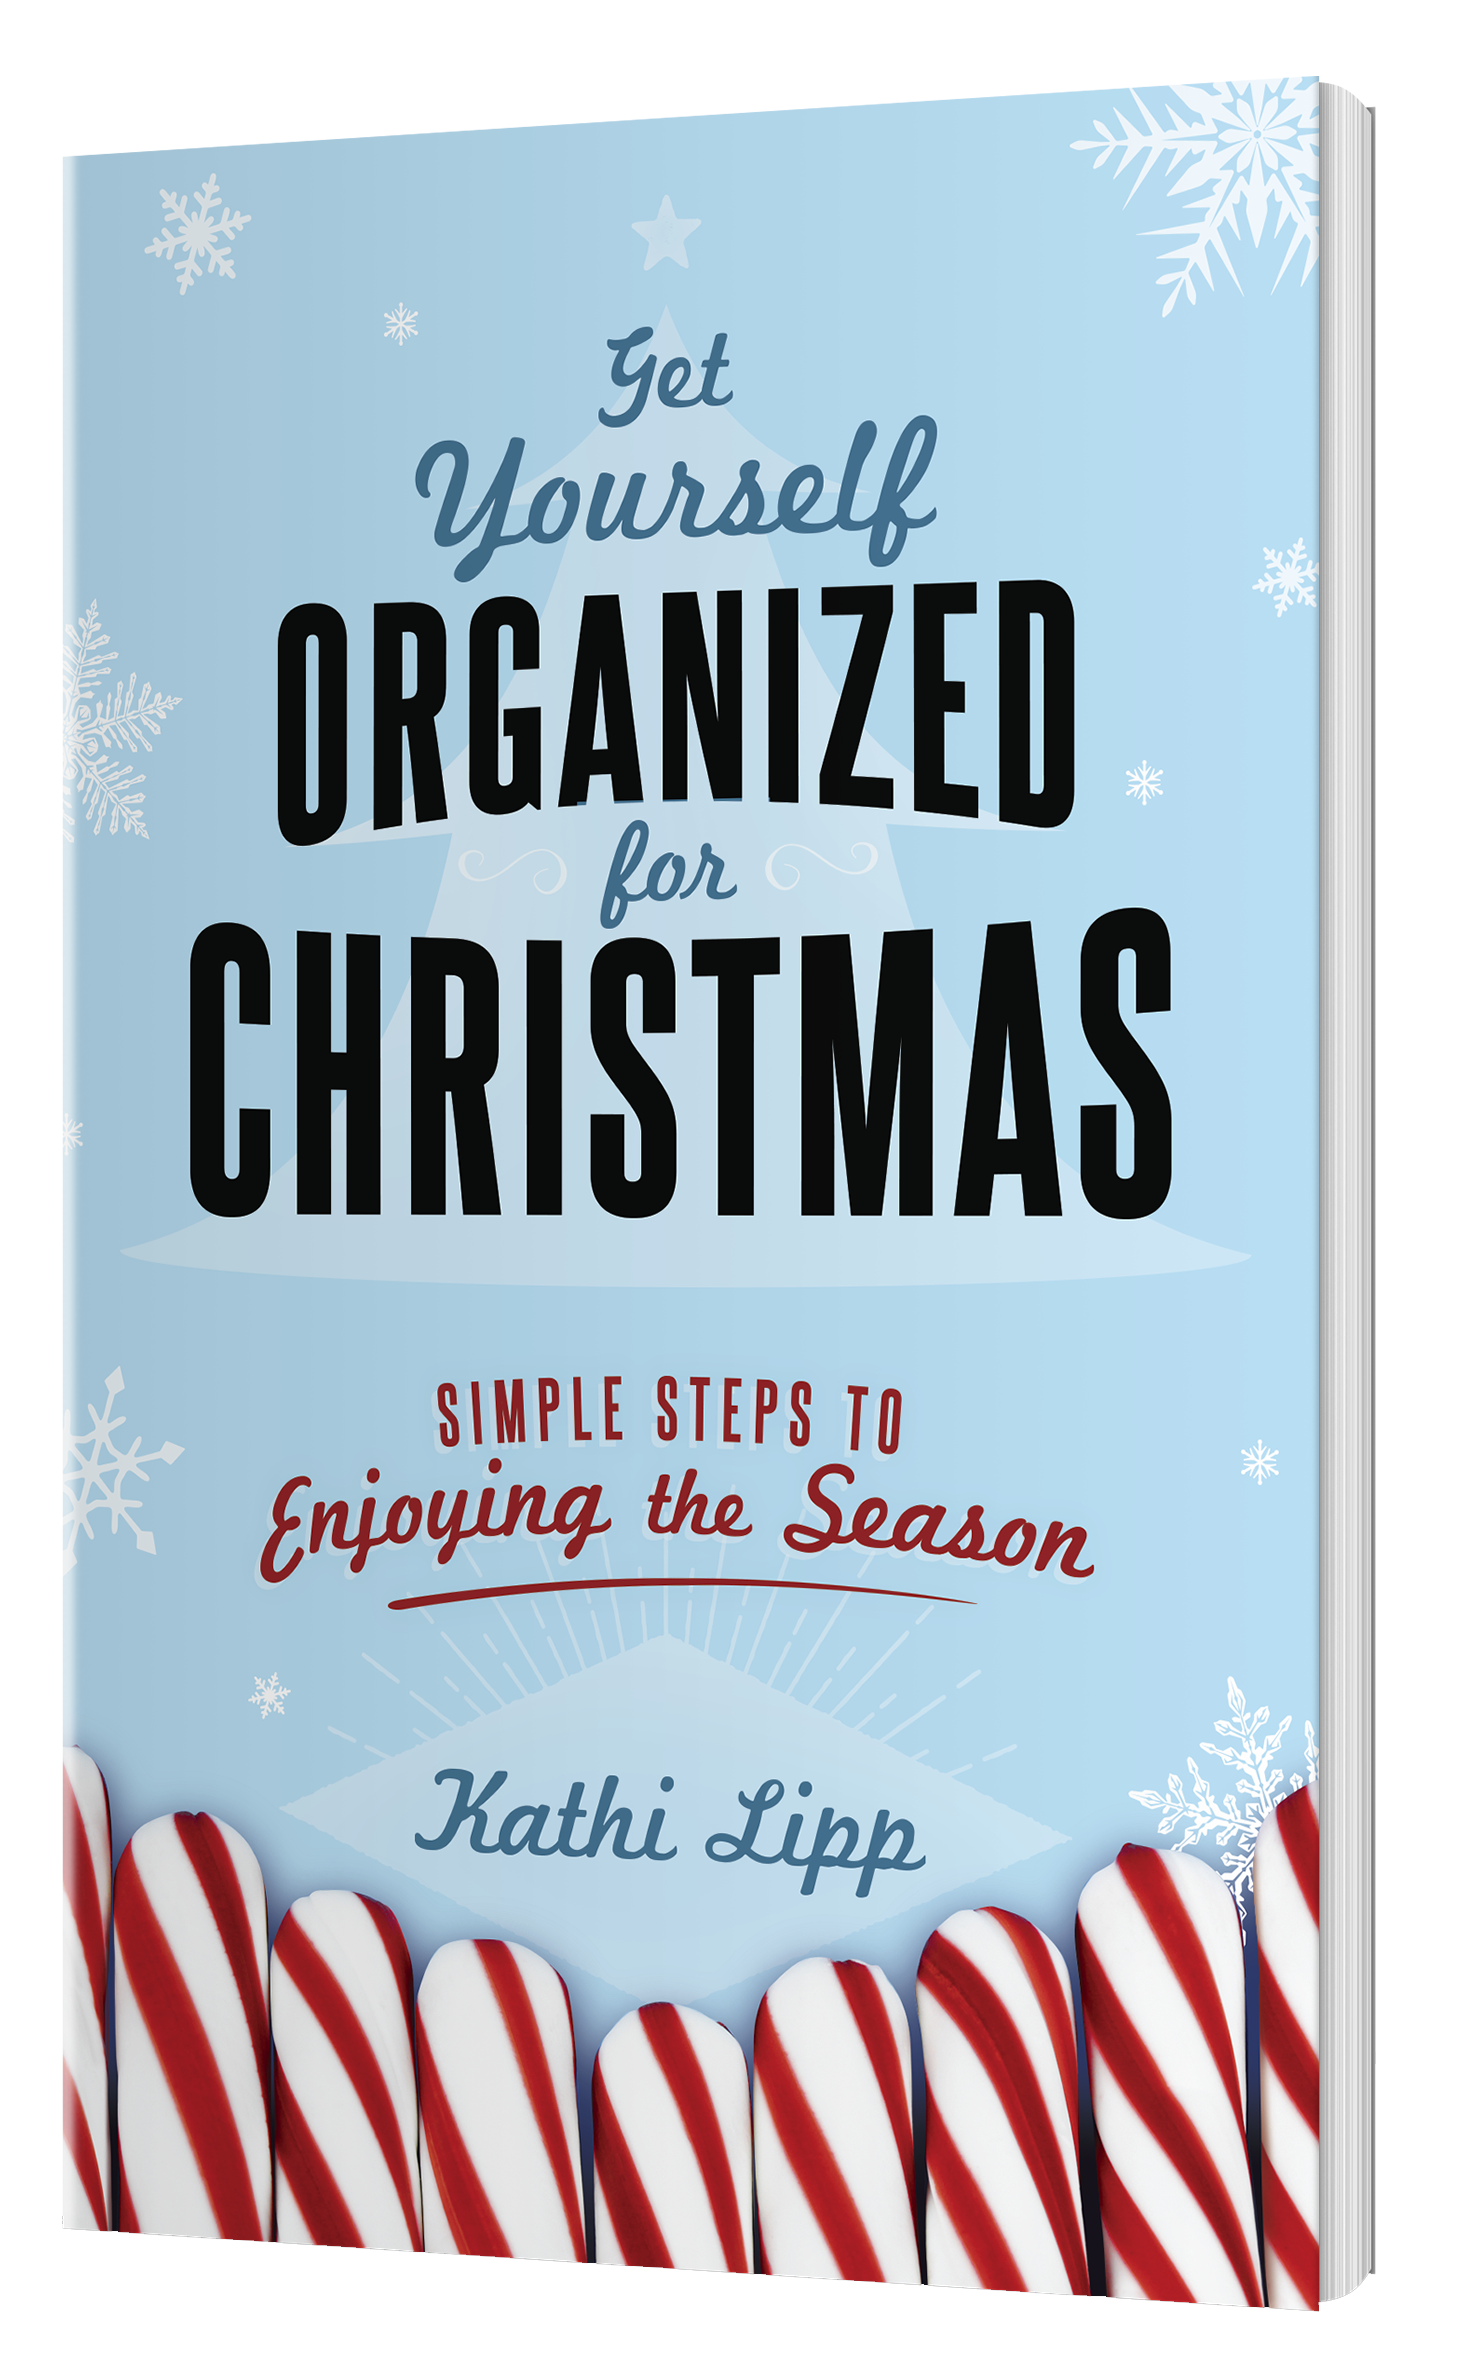 Get Yourself Organized for Christmas no shadow